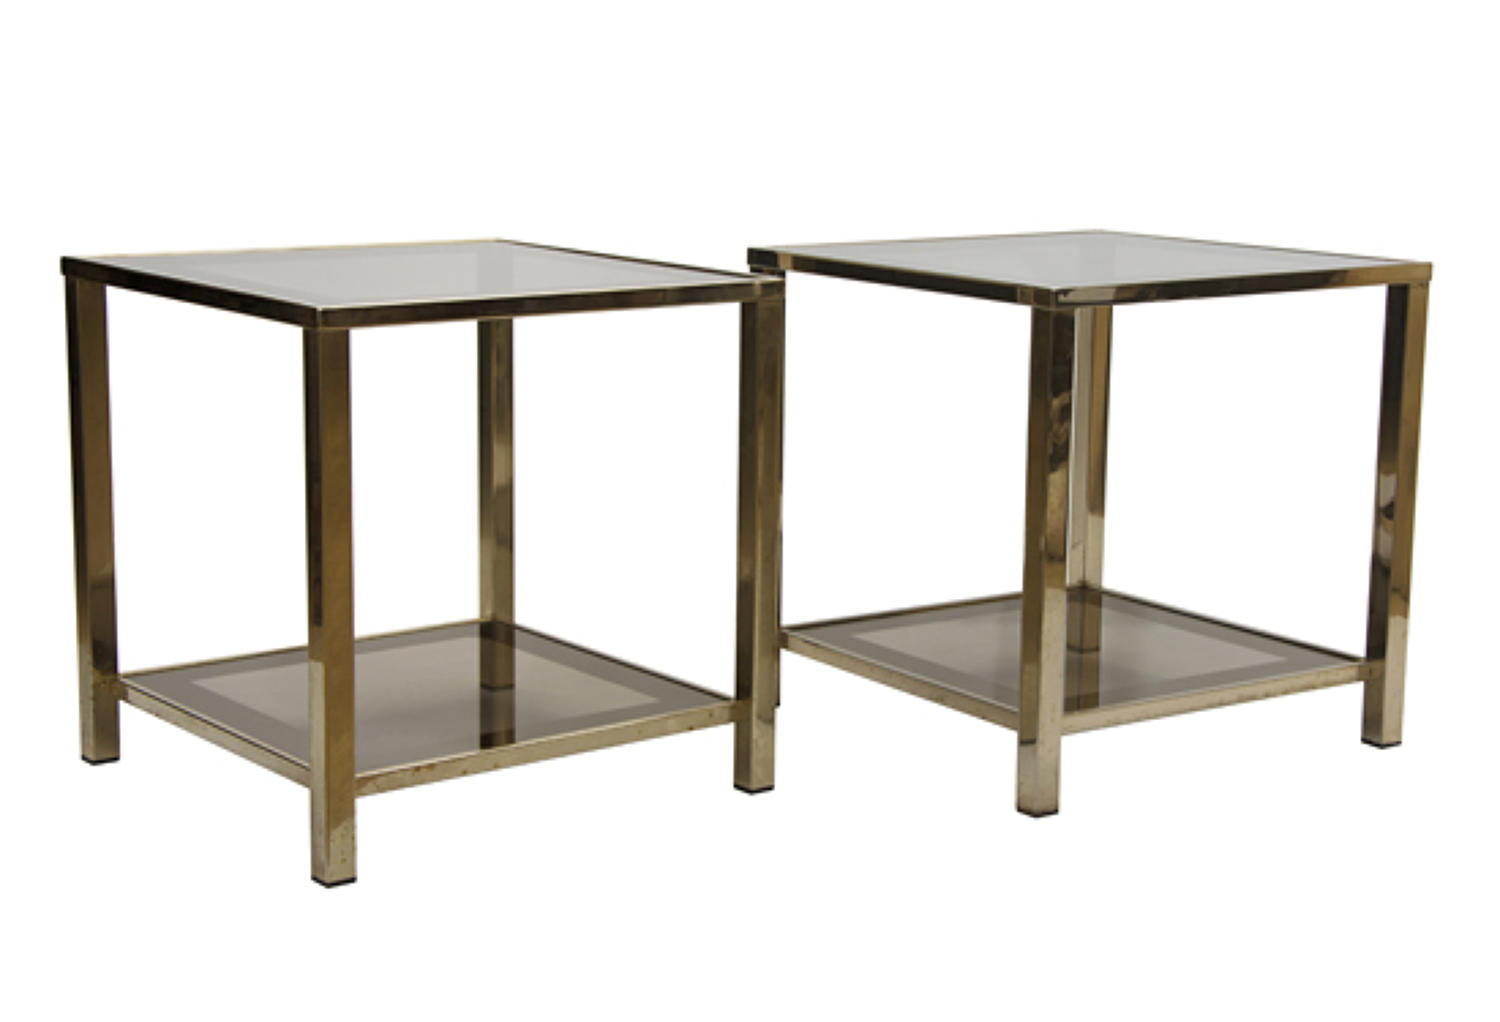 Pair of Gold Plated Side Tables by Belgo Chrom c.1975